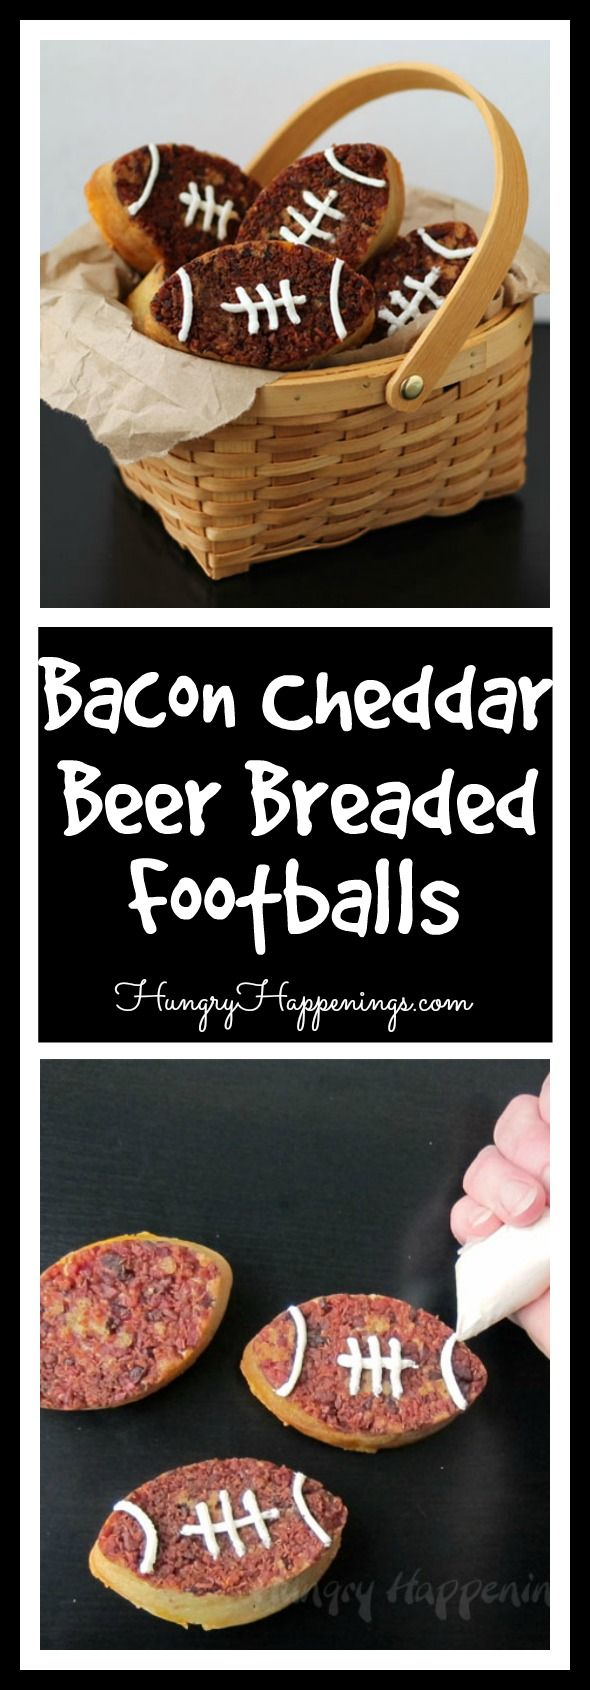 You've heard of a bread basket. But I don't think you've ever heard of one filled with Bacon Cheddar Beer Bread Footballs! Like come on, what isn't there to like in these delicious grains.